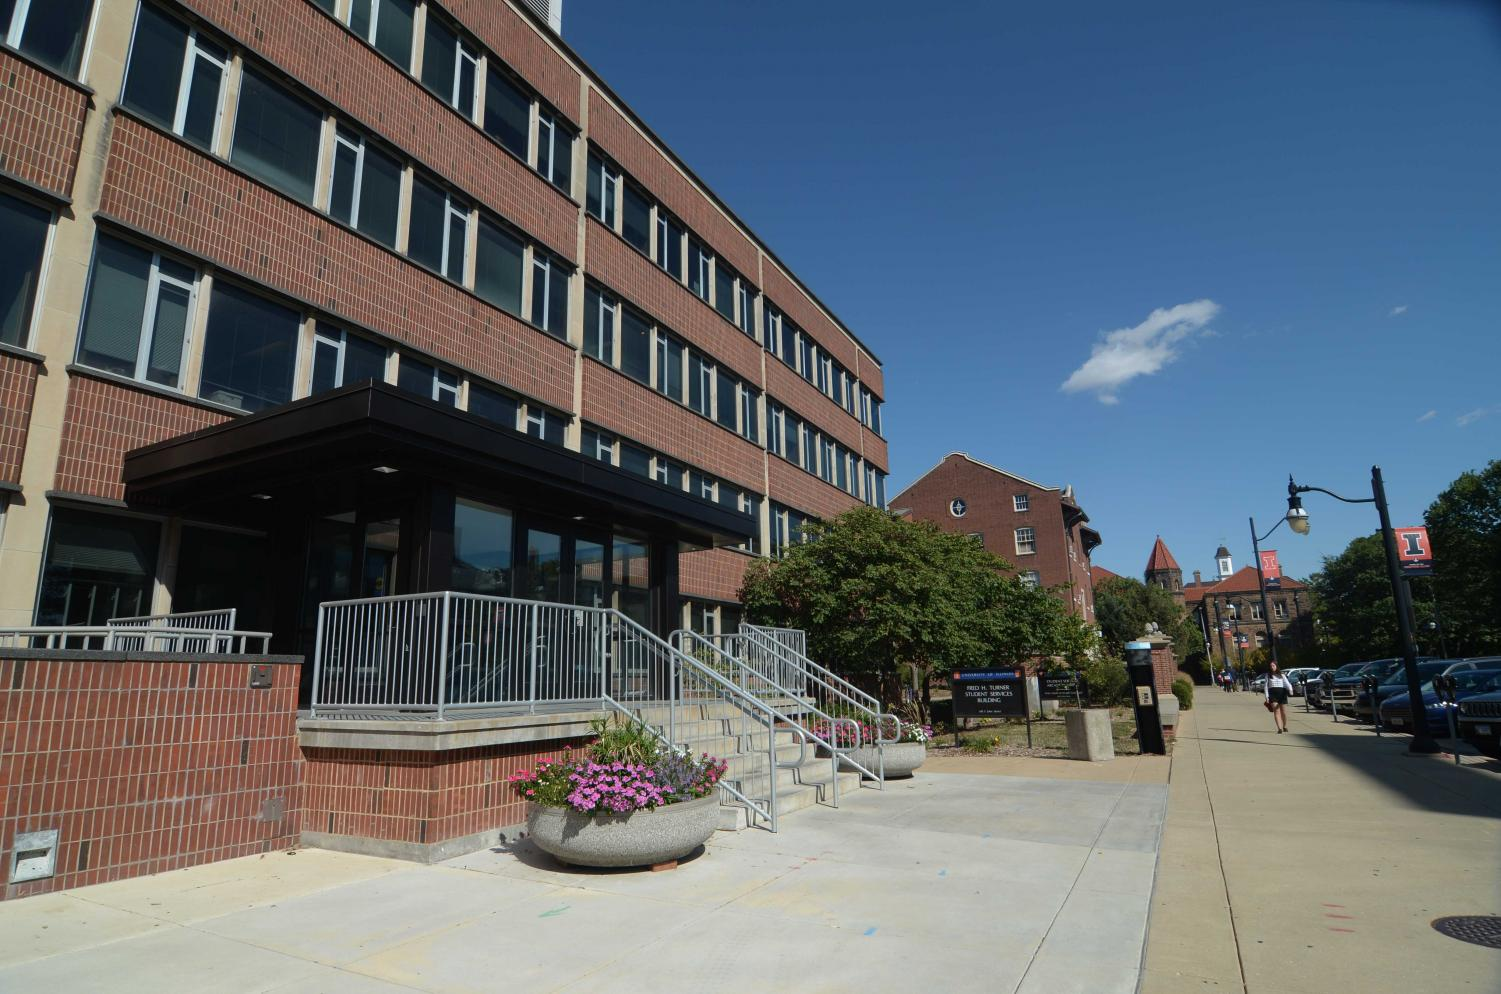 The Counseling Center is located at the Turner Student Services Building, 610 E. John St., Champaign. The University offers a variety of resources to help students adjust to college and campus life.